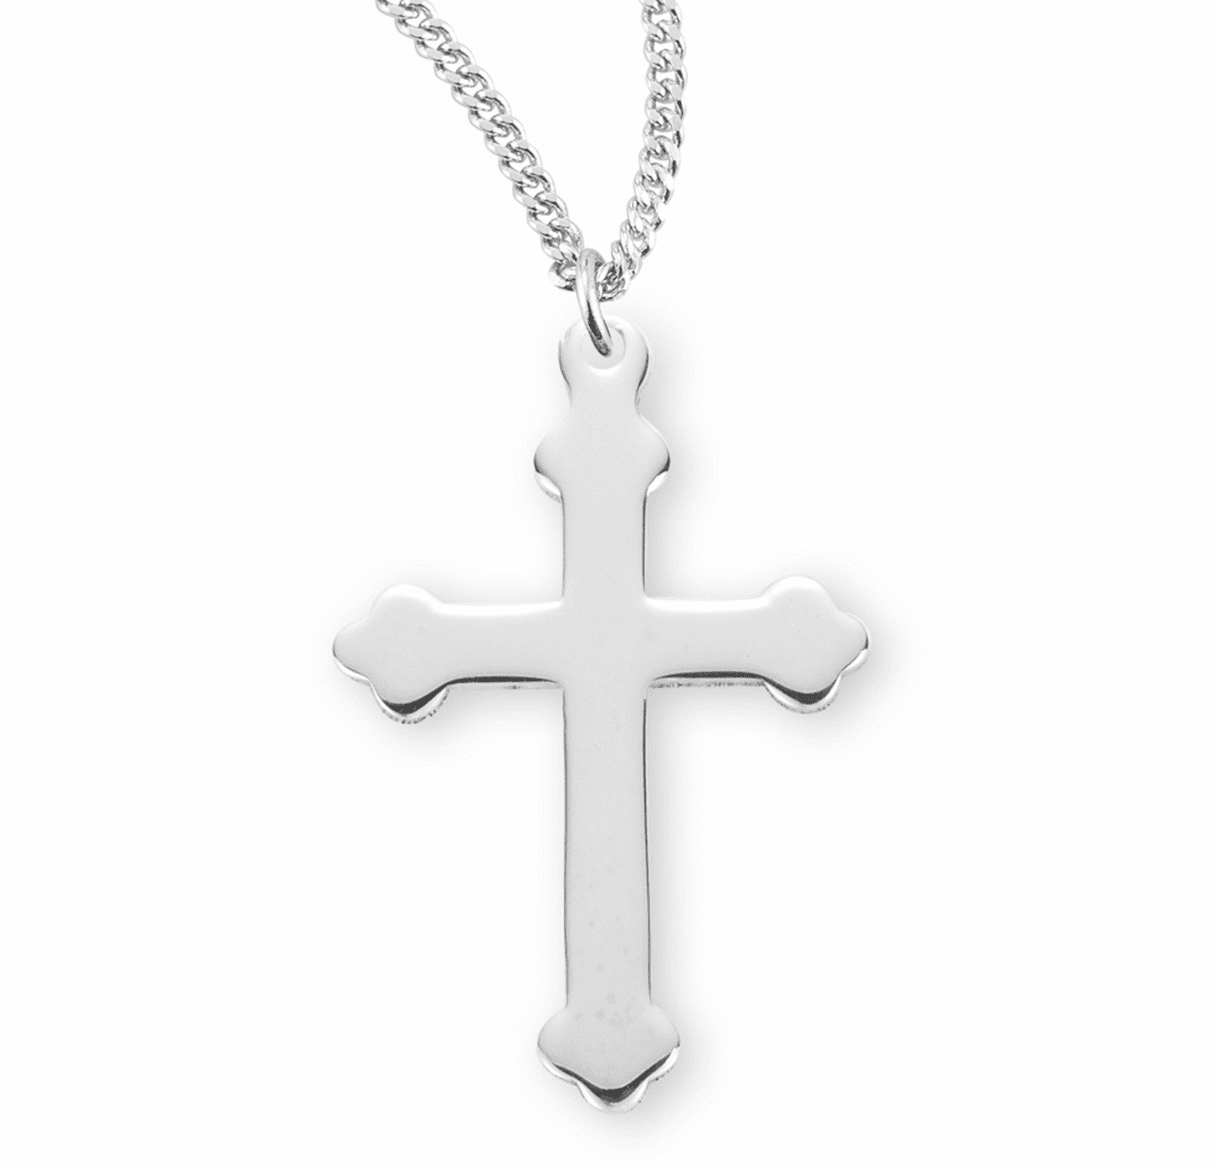 HMH Religious Sterling Silver High Polished Plain Cross Necklace